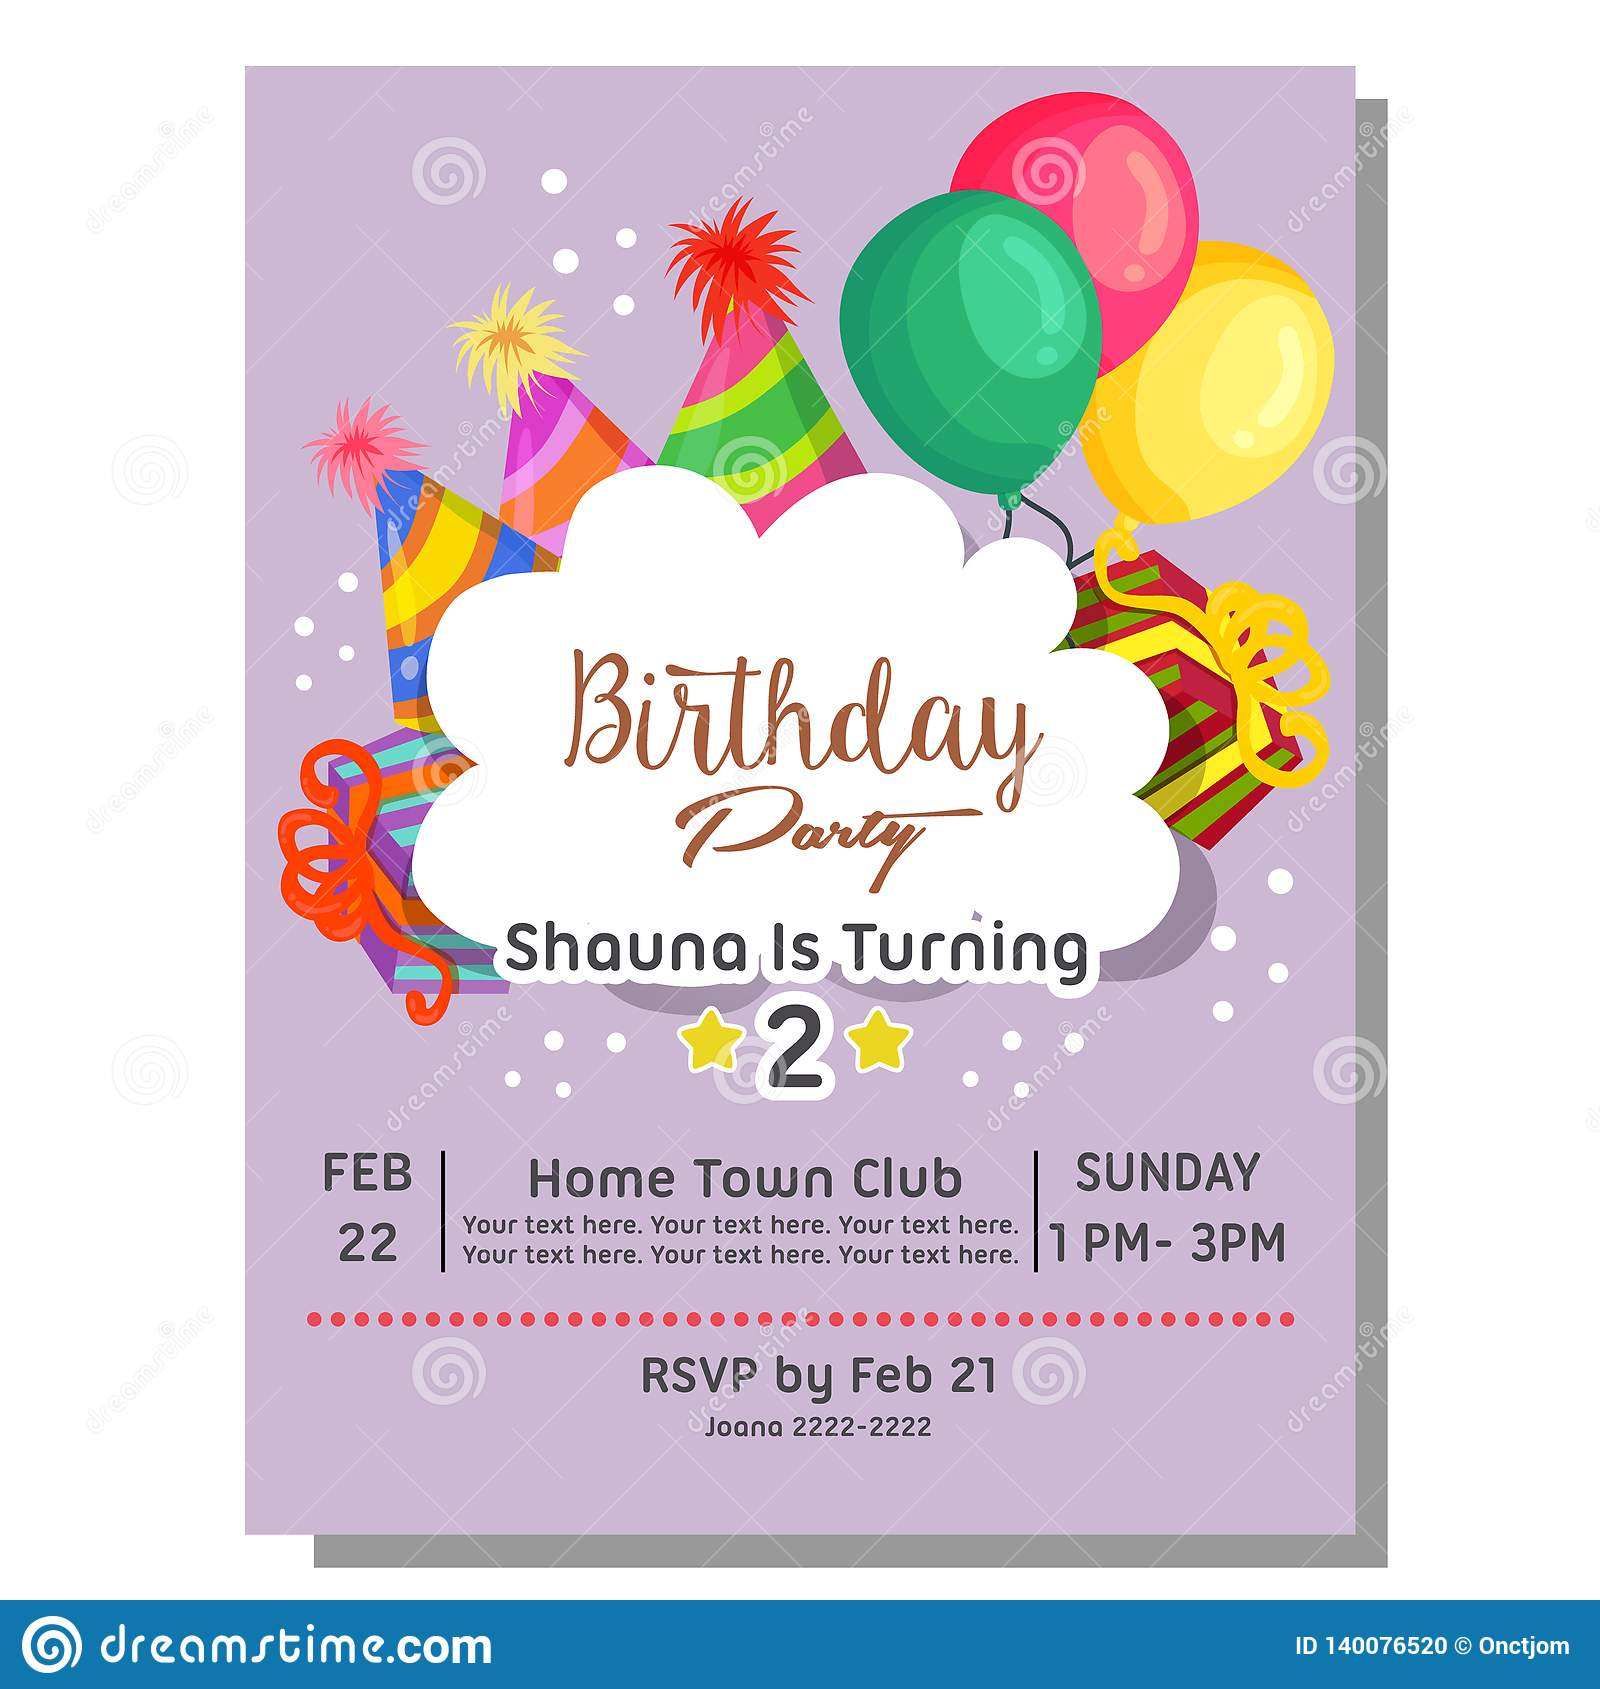 https www dreamstime com nd birthday party invitation card hat balloon present colorful nd birthday party invitation card hat balloon present image140076520